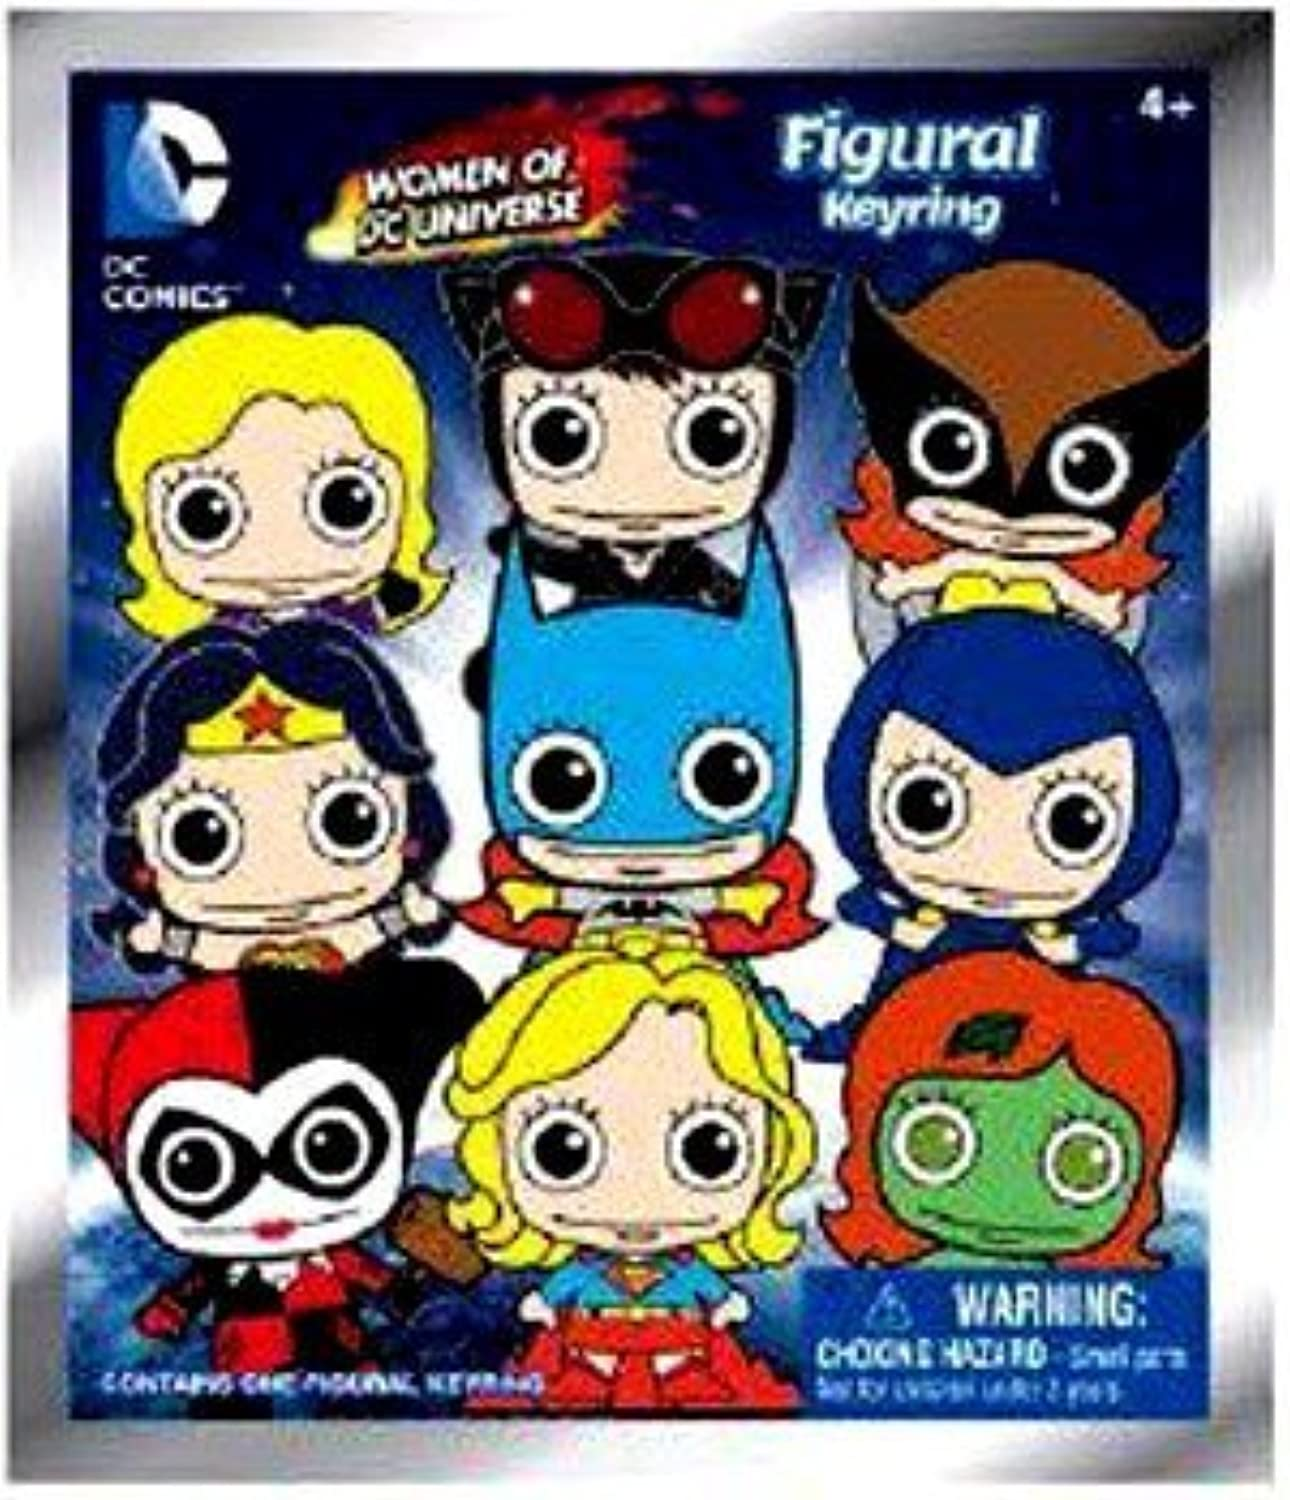 DC Comics 3D Figural Foam Keyring Women of DC Universe Series 1 Mystery Pack by DC Comics